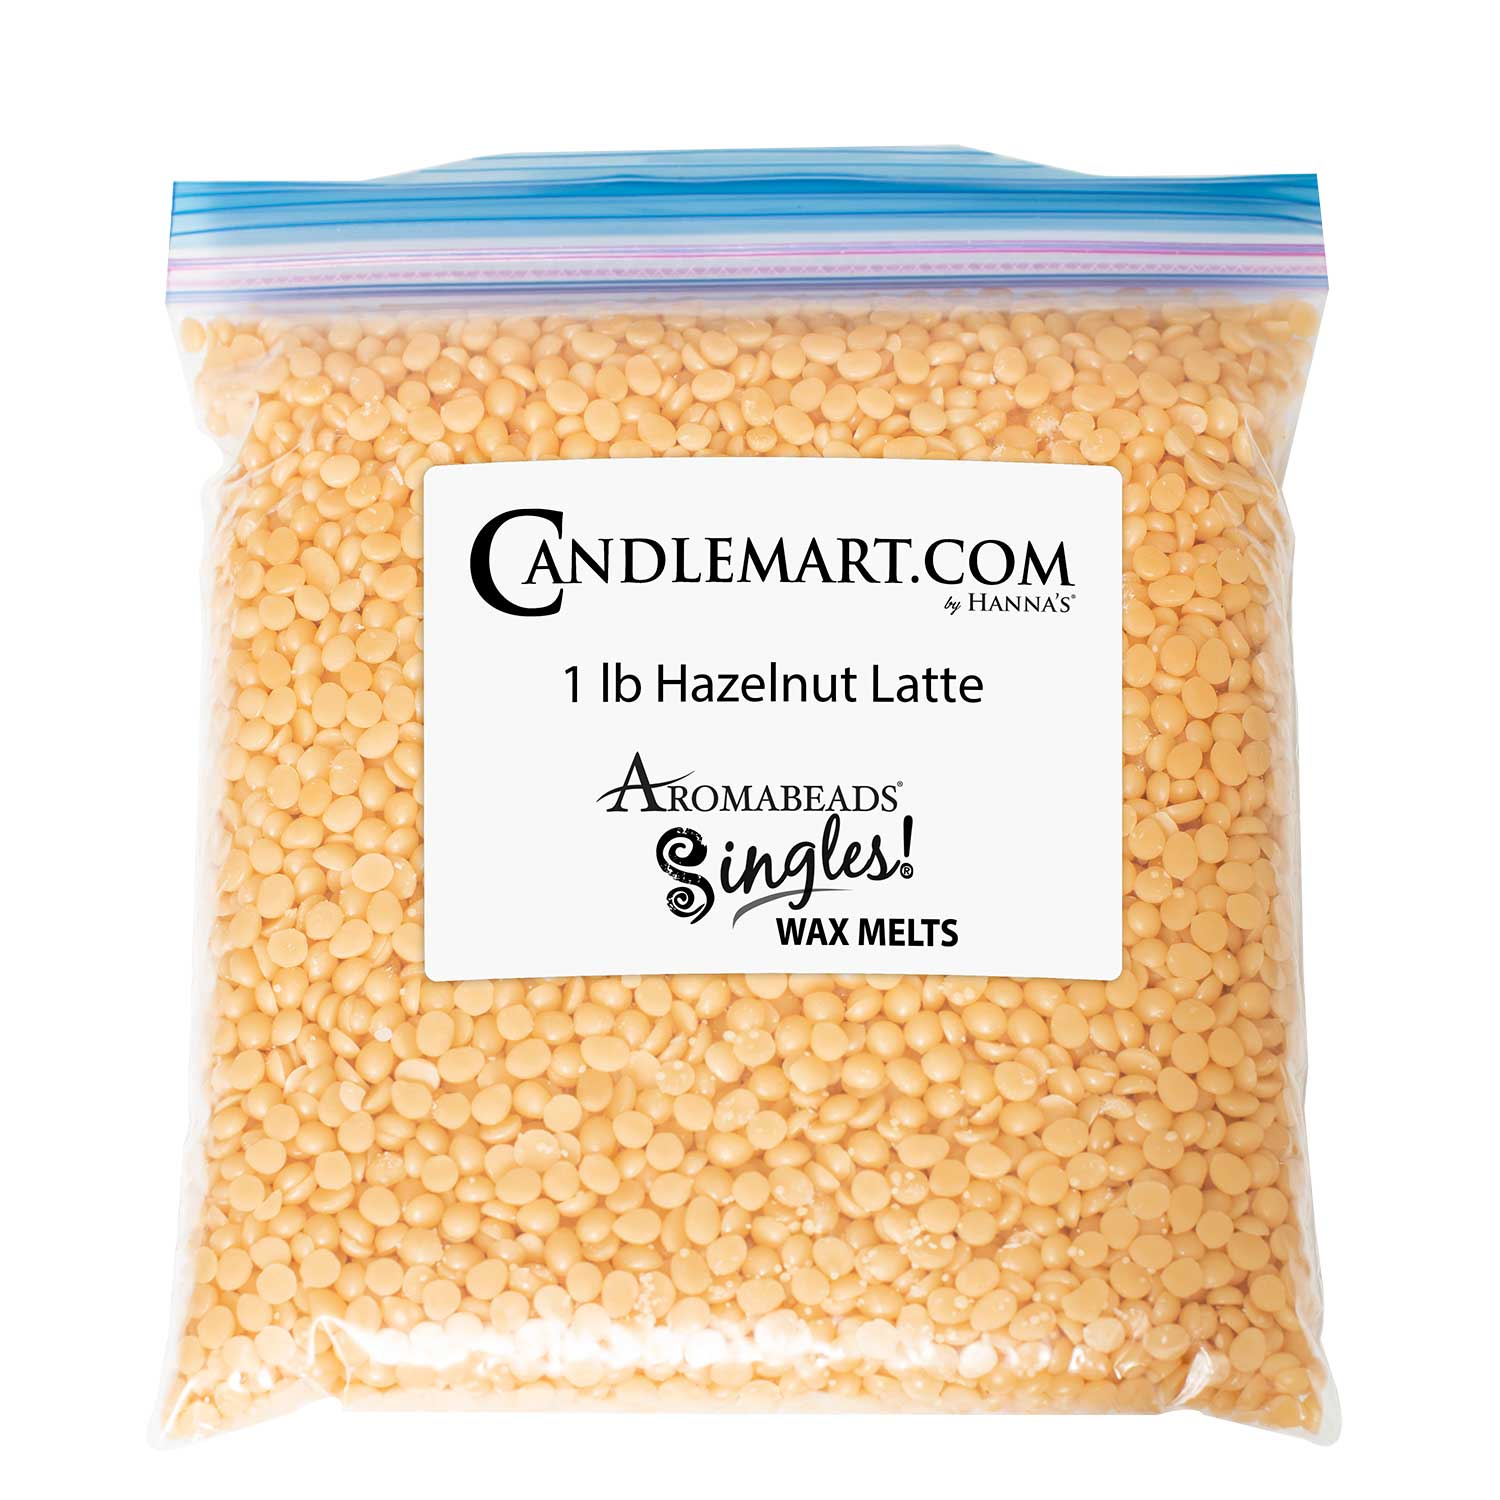 Aromabeads Hazelnut Latte Bulk Wax Beads Bulk Bag Wax Melts Candlemart.com $ 9.99